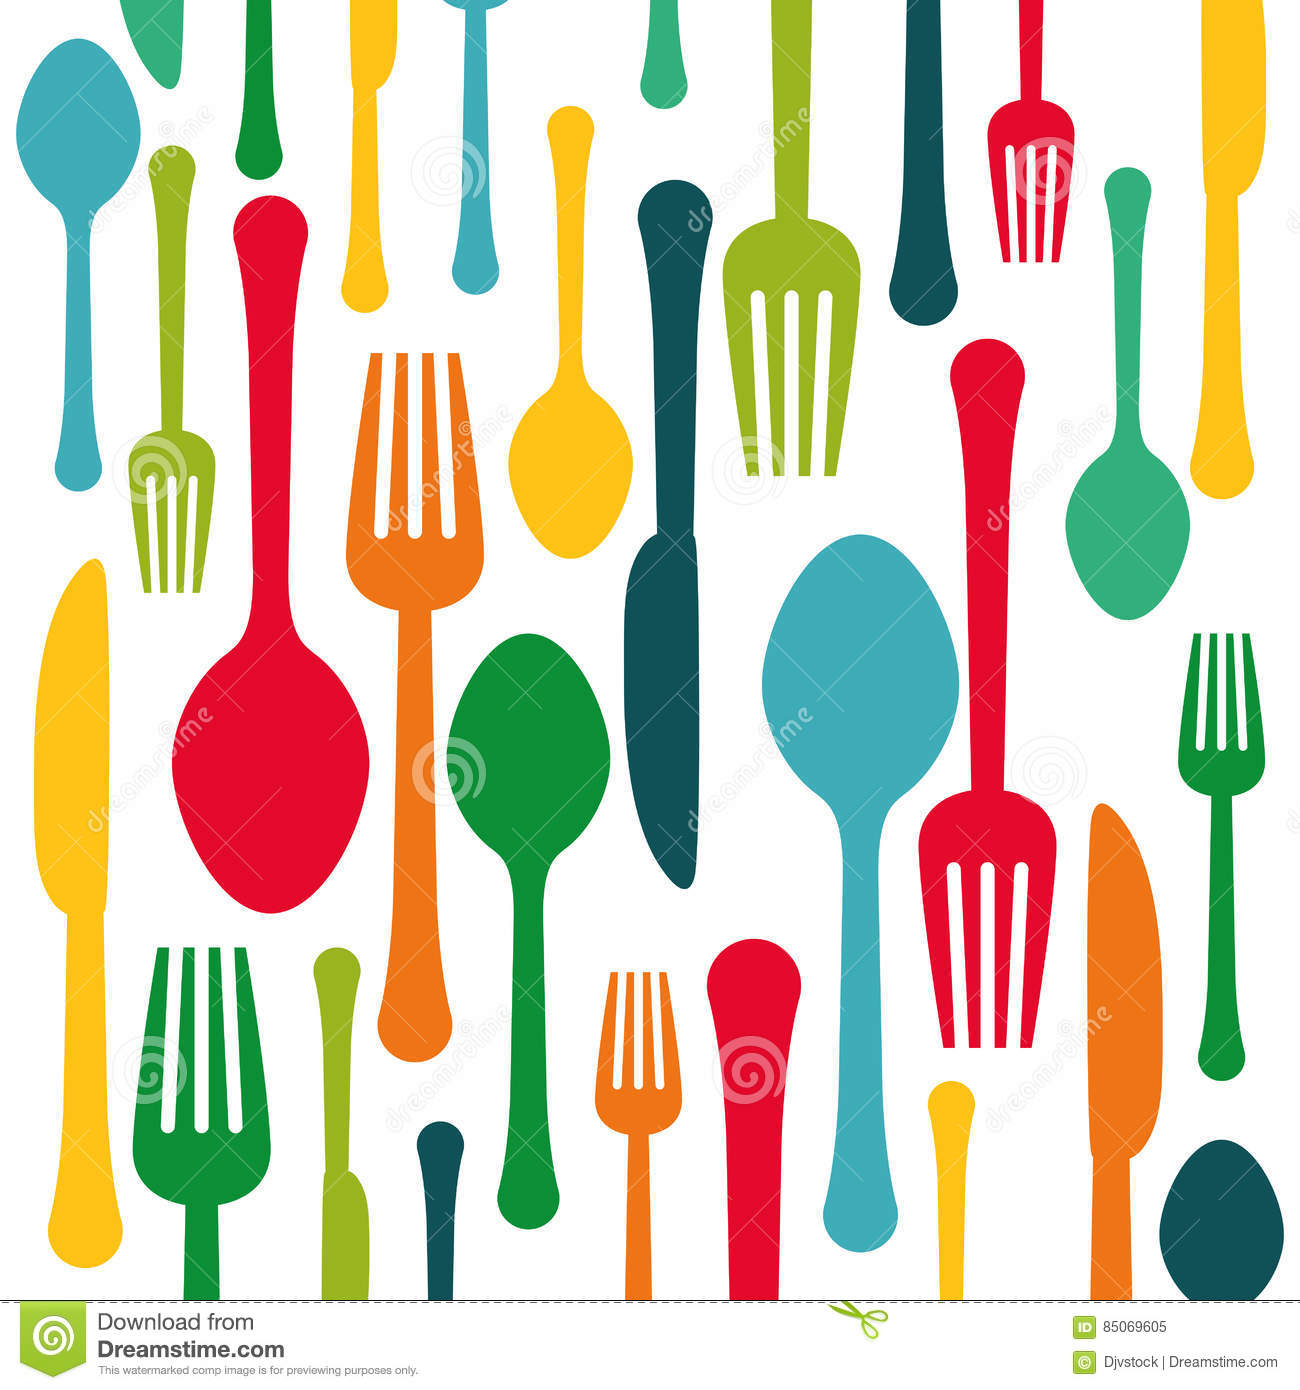 Colorful kitchen utensils background icon stock for Colorful kitchen tools